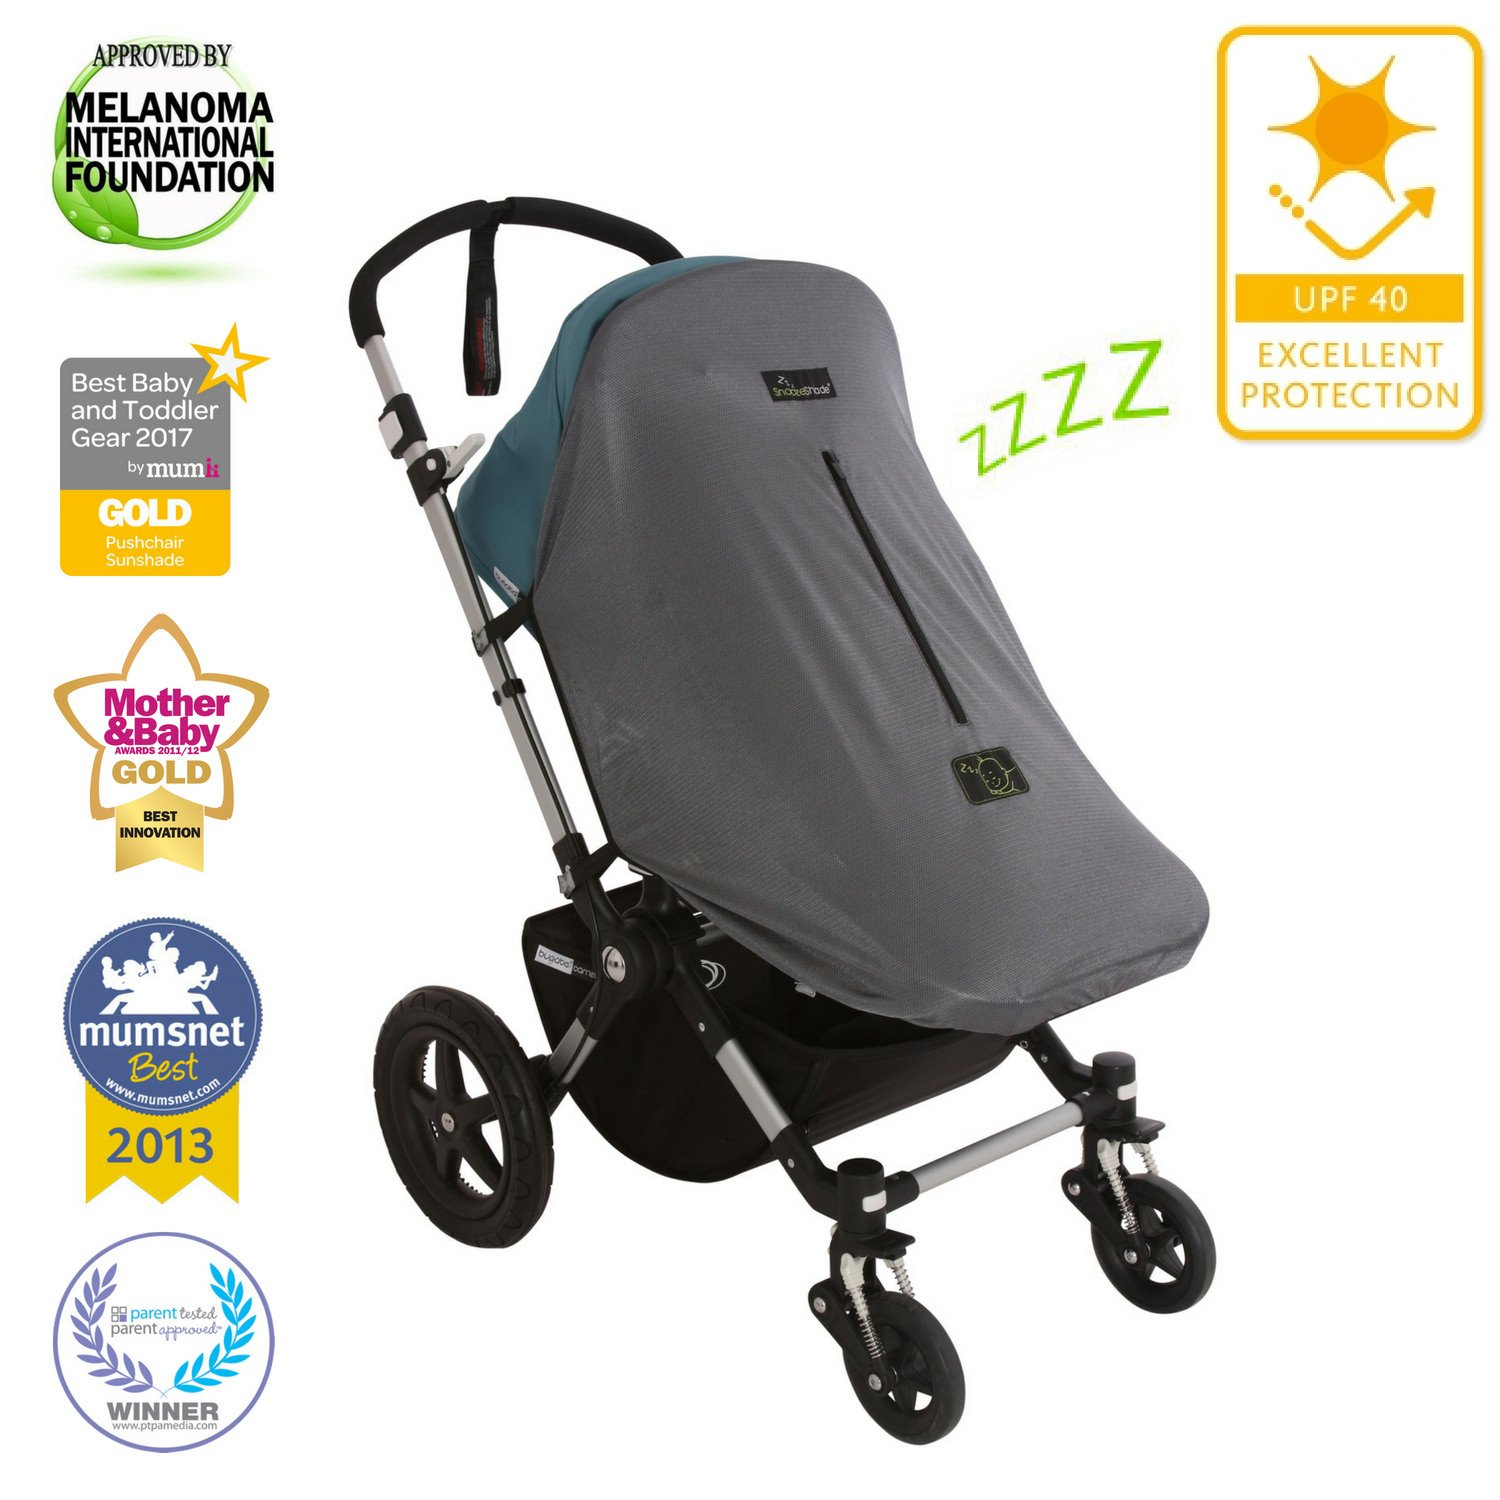 SnoozeShade Original Deluxe Stroller Sunshade and Baby Sleep Aid, Blocks Up to 97.5-Percent UV, Grey Really Simple Ideas SS0011